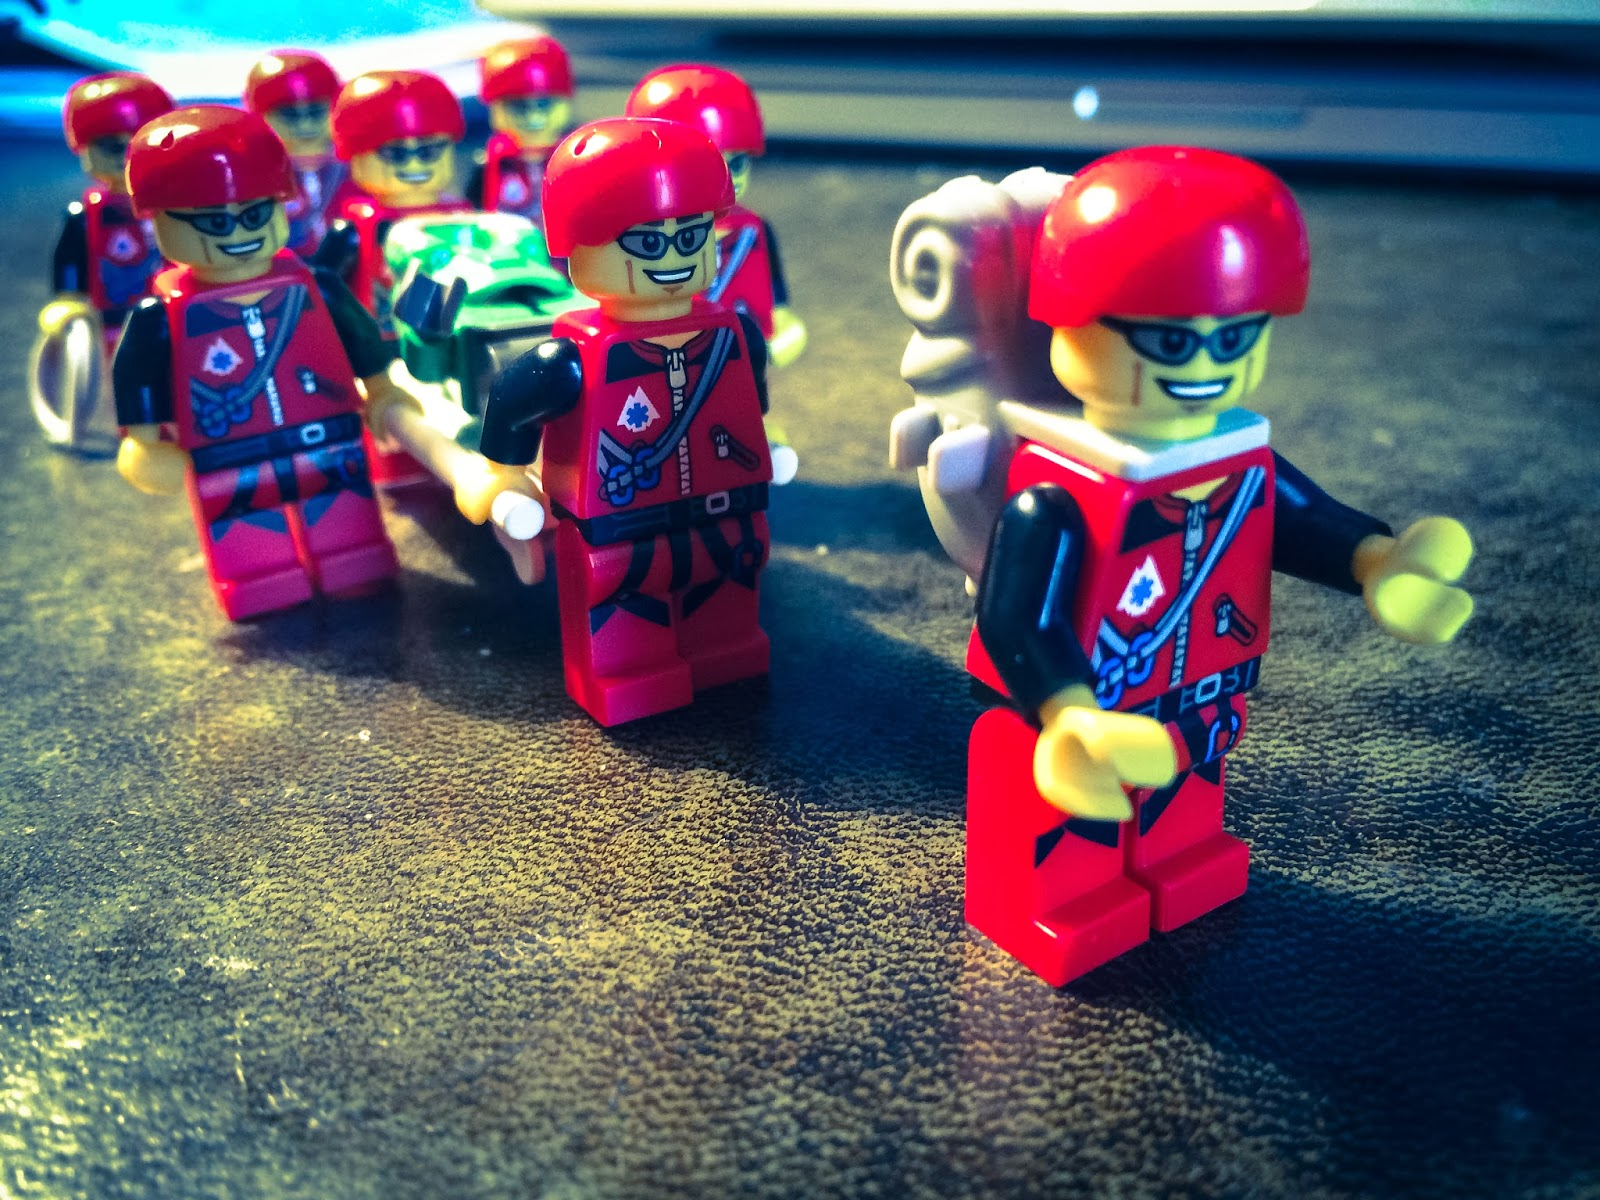 Eight Lego Mountain Rescue figures carrying a lego casualty on a stretcher.